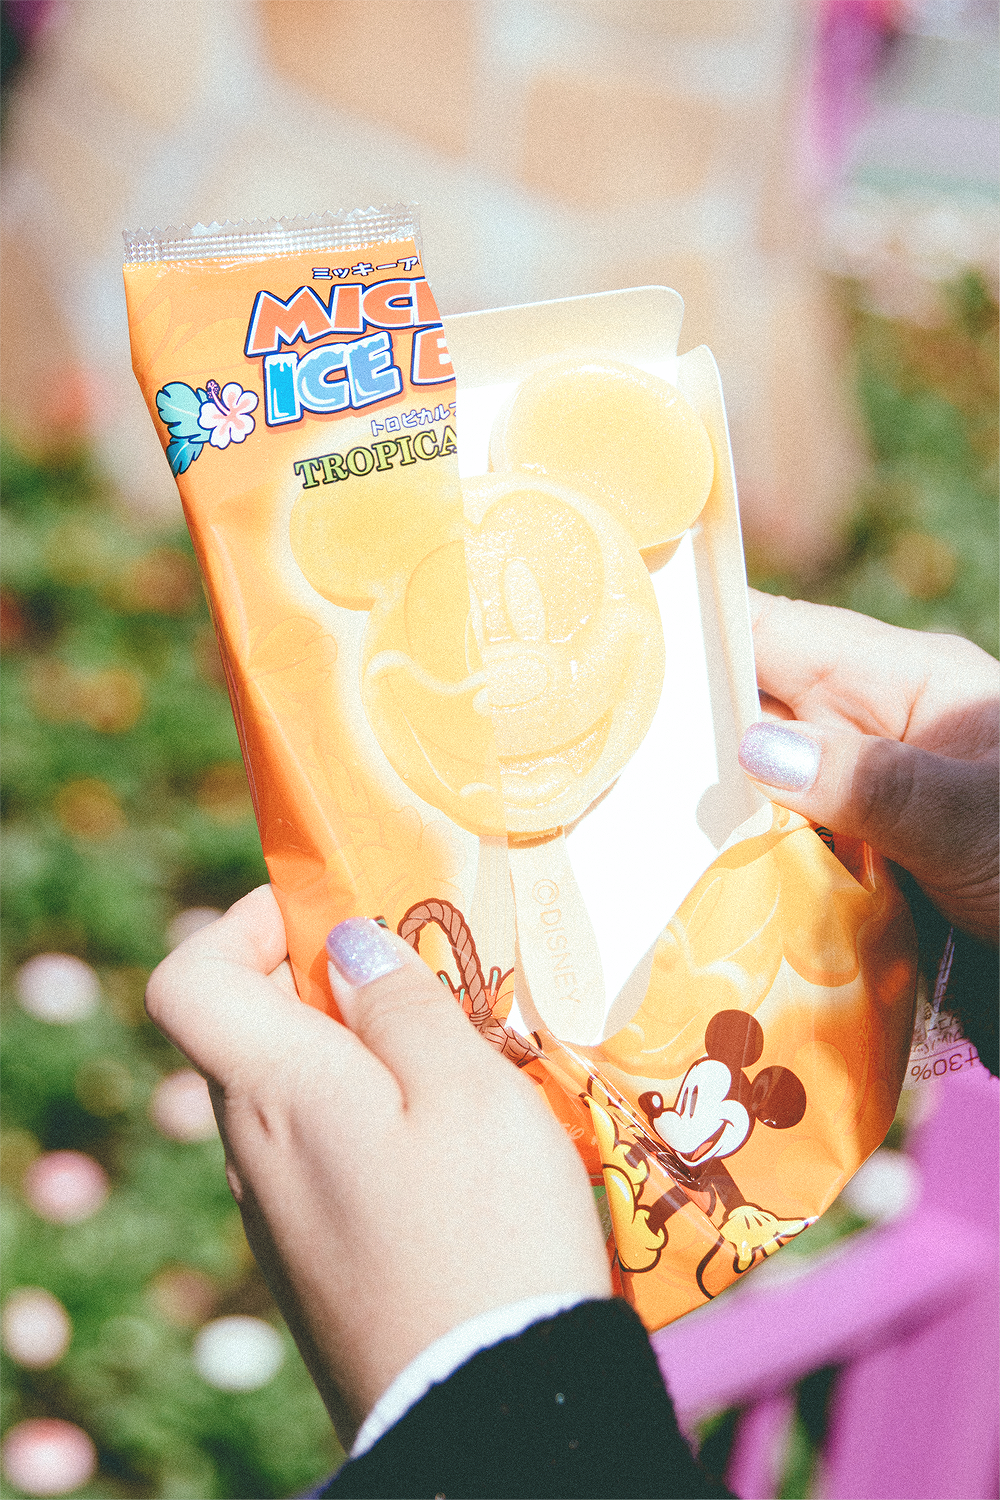 The warm weather finally permitted for some delicious ice cream! I love these Mickey Ice Bars because they're so full of intense fruit flavor and they're ridiculously cute! Jane ate Mickey in Tropical Fruit.